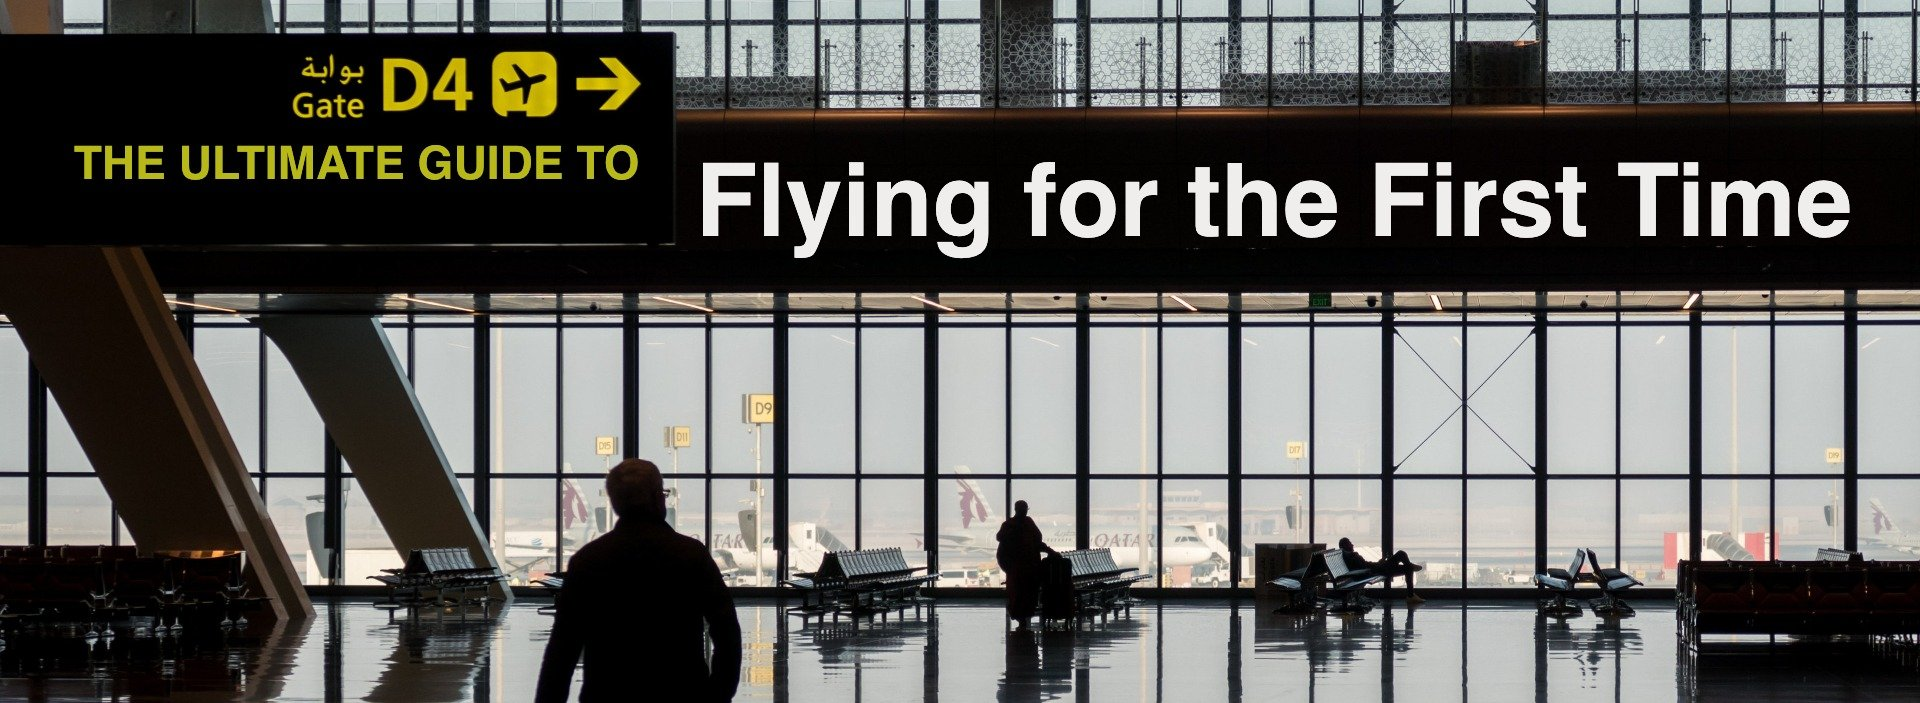 The Ultimate Step-by-Step Guide to Flying for the First Time